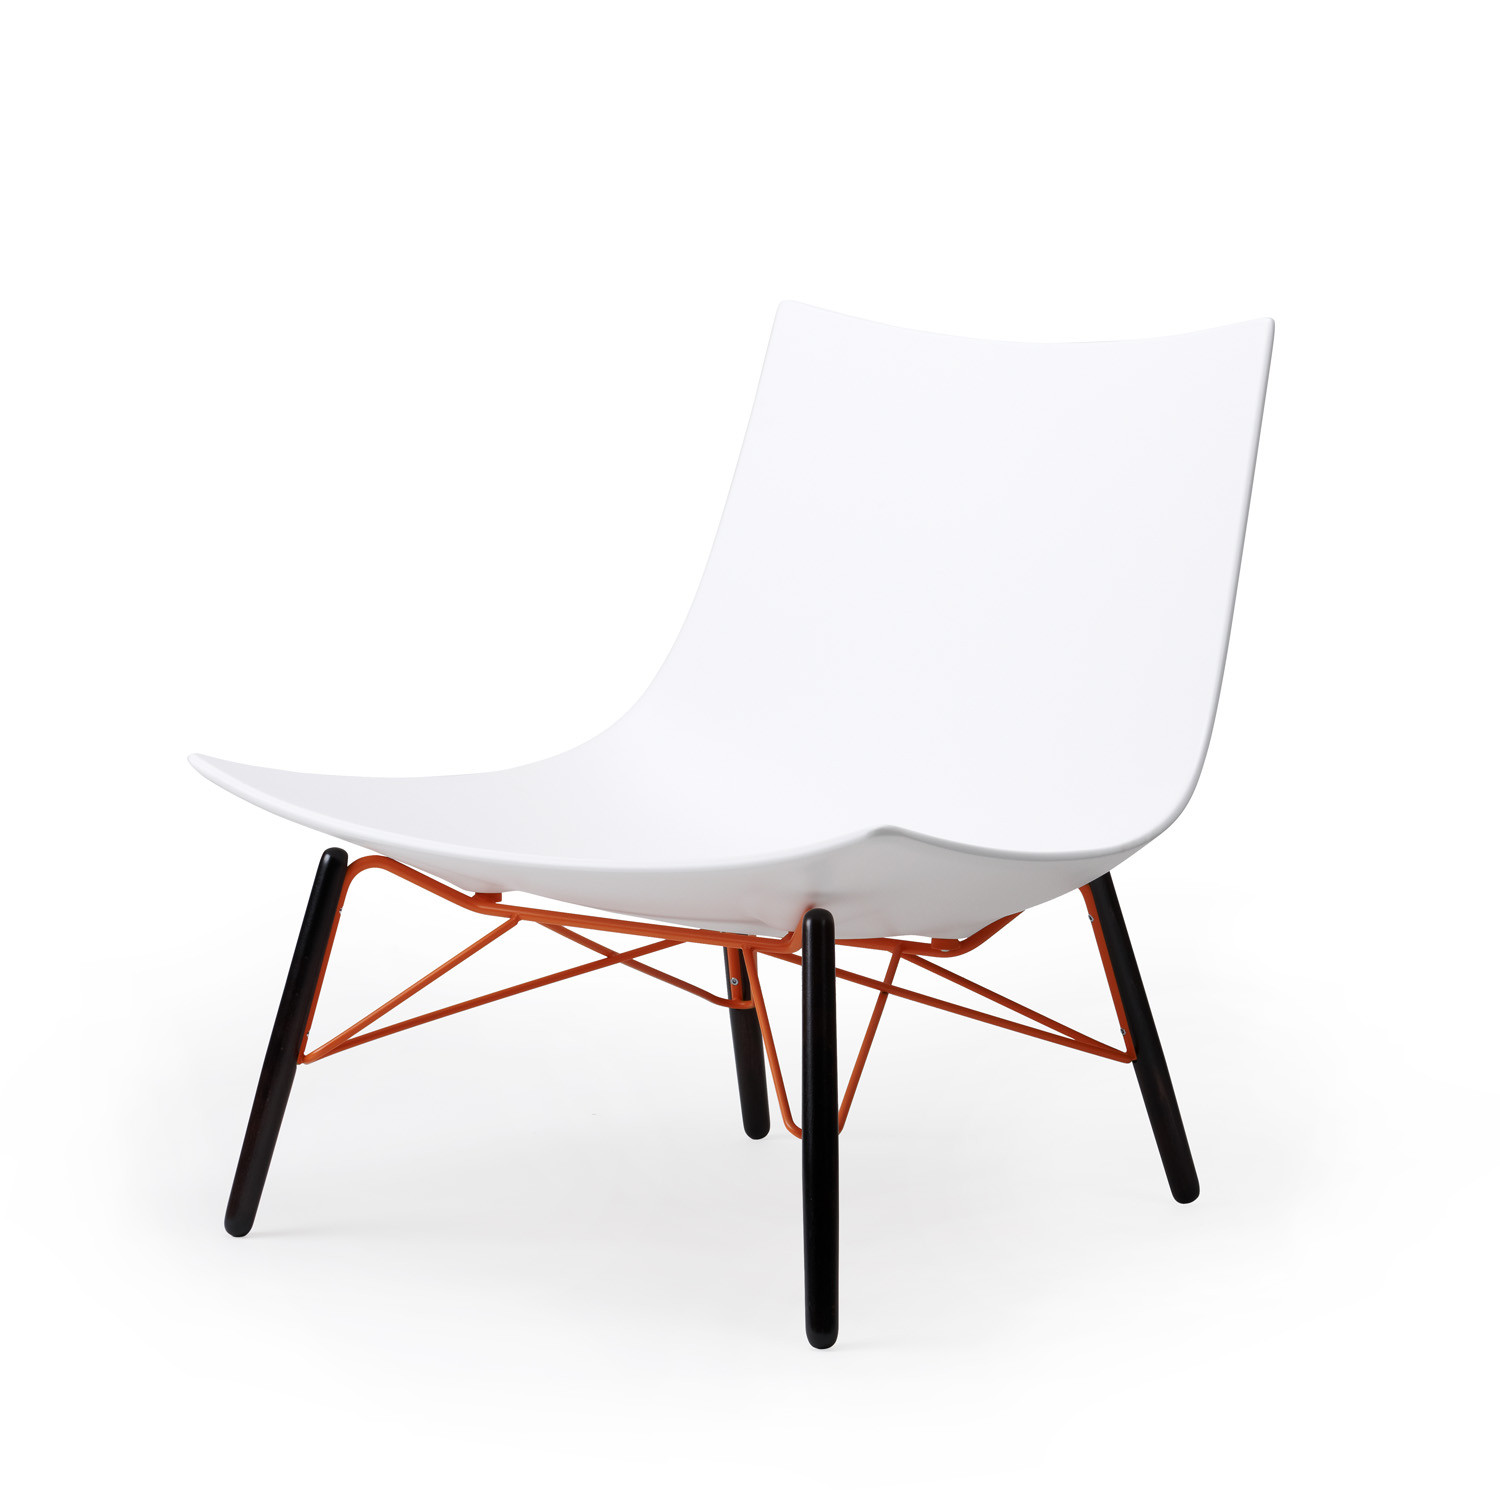 Luc 4-Leg Base Lounge Chair